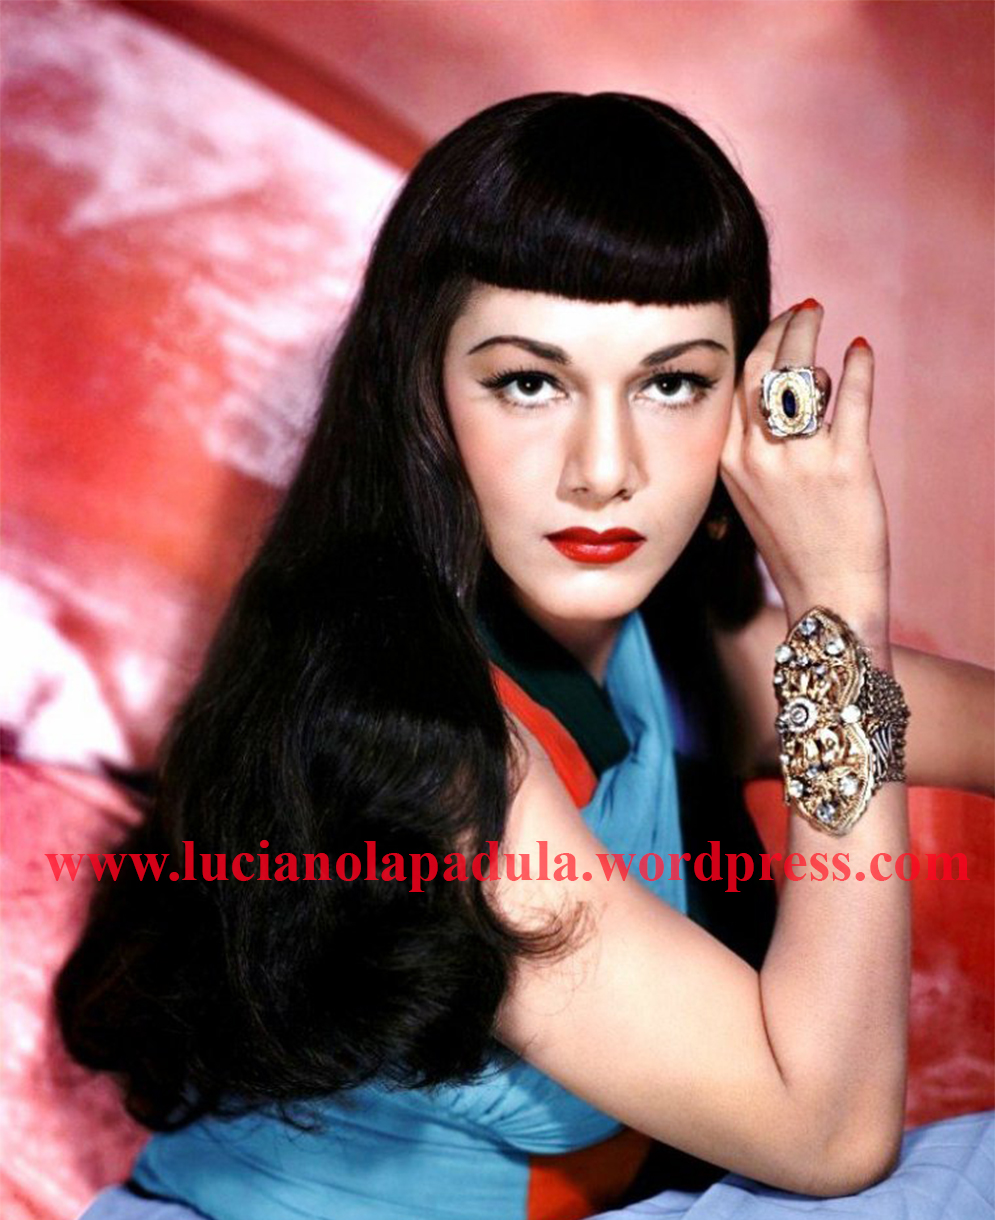 maria montez history fashion cinema luciano lapadula old hollywood blog scrittore blogger moda insegnante historian 1 photography pinup animalier leopard sexy beauty color photo